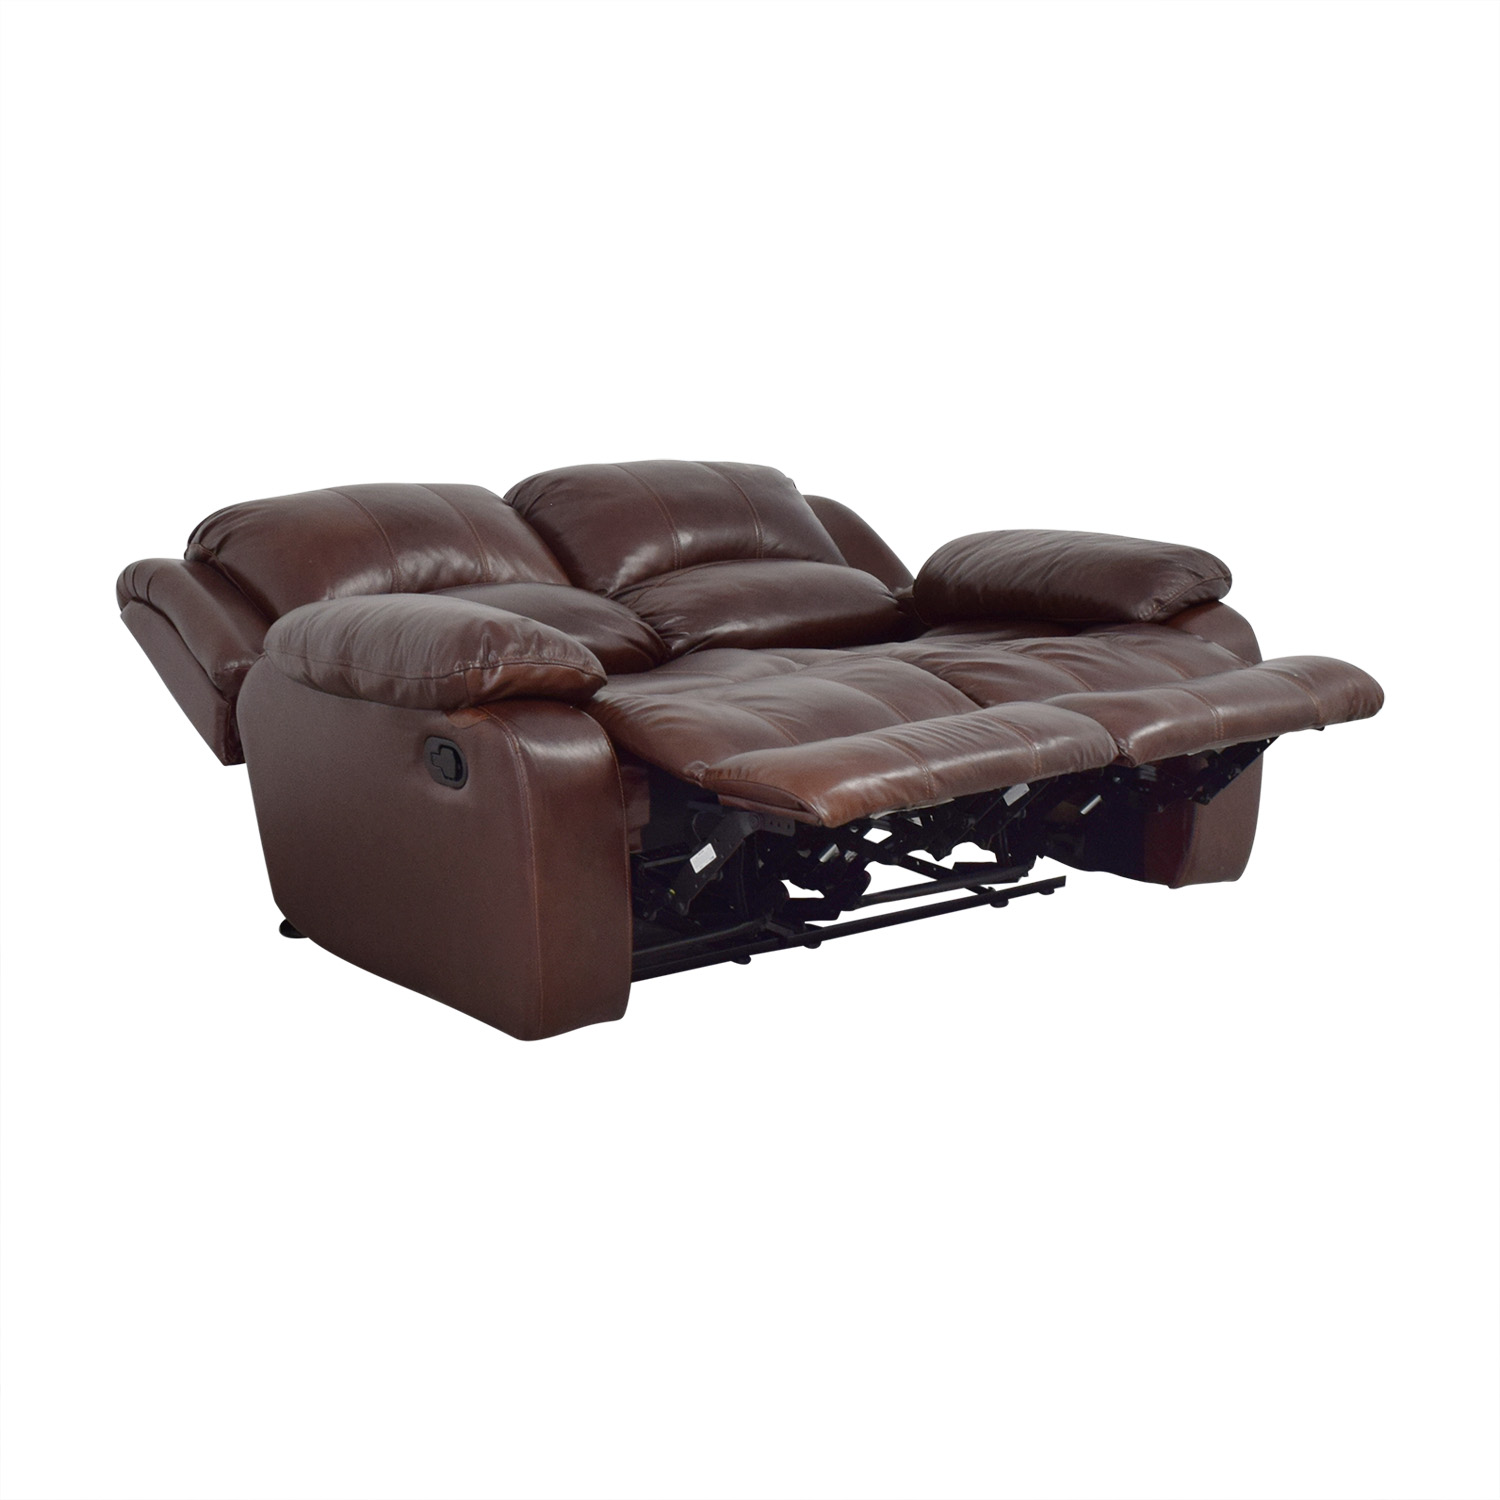 shop Raymour & Flanigan Raymour & Flanigan Dual Reclining Loveseat online